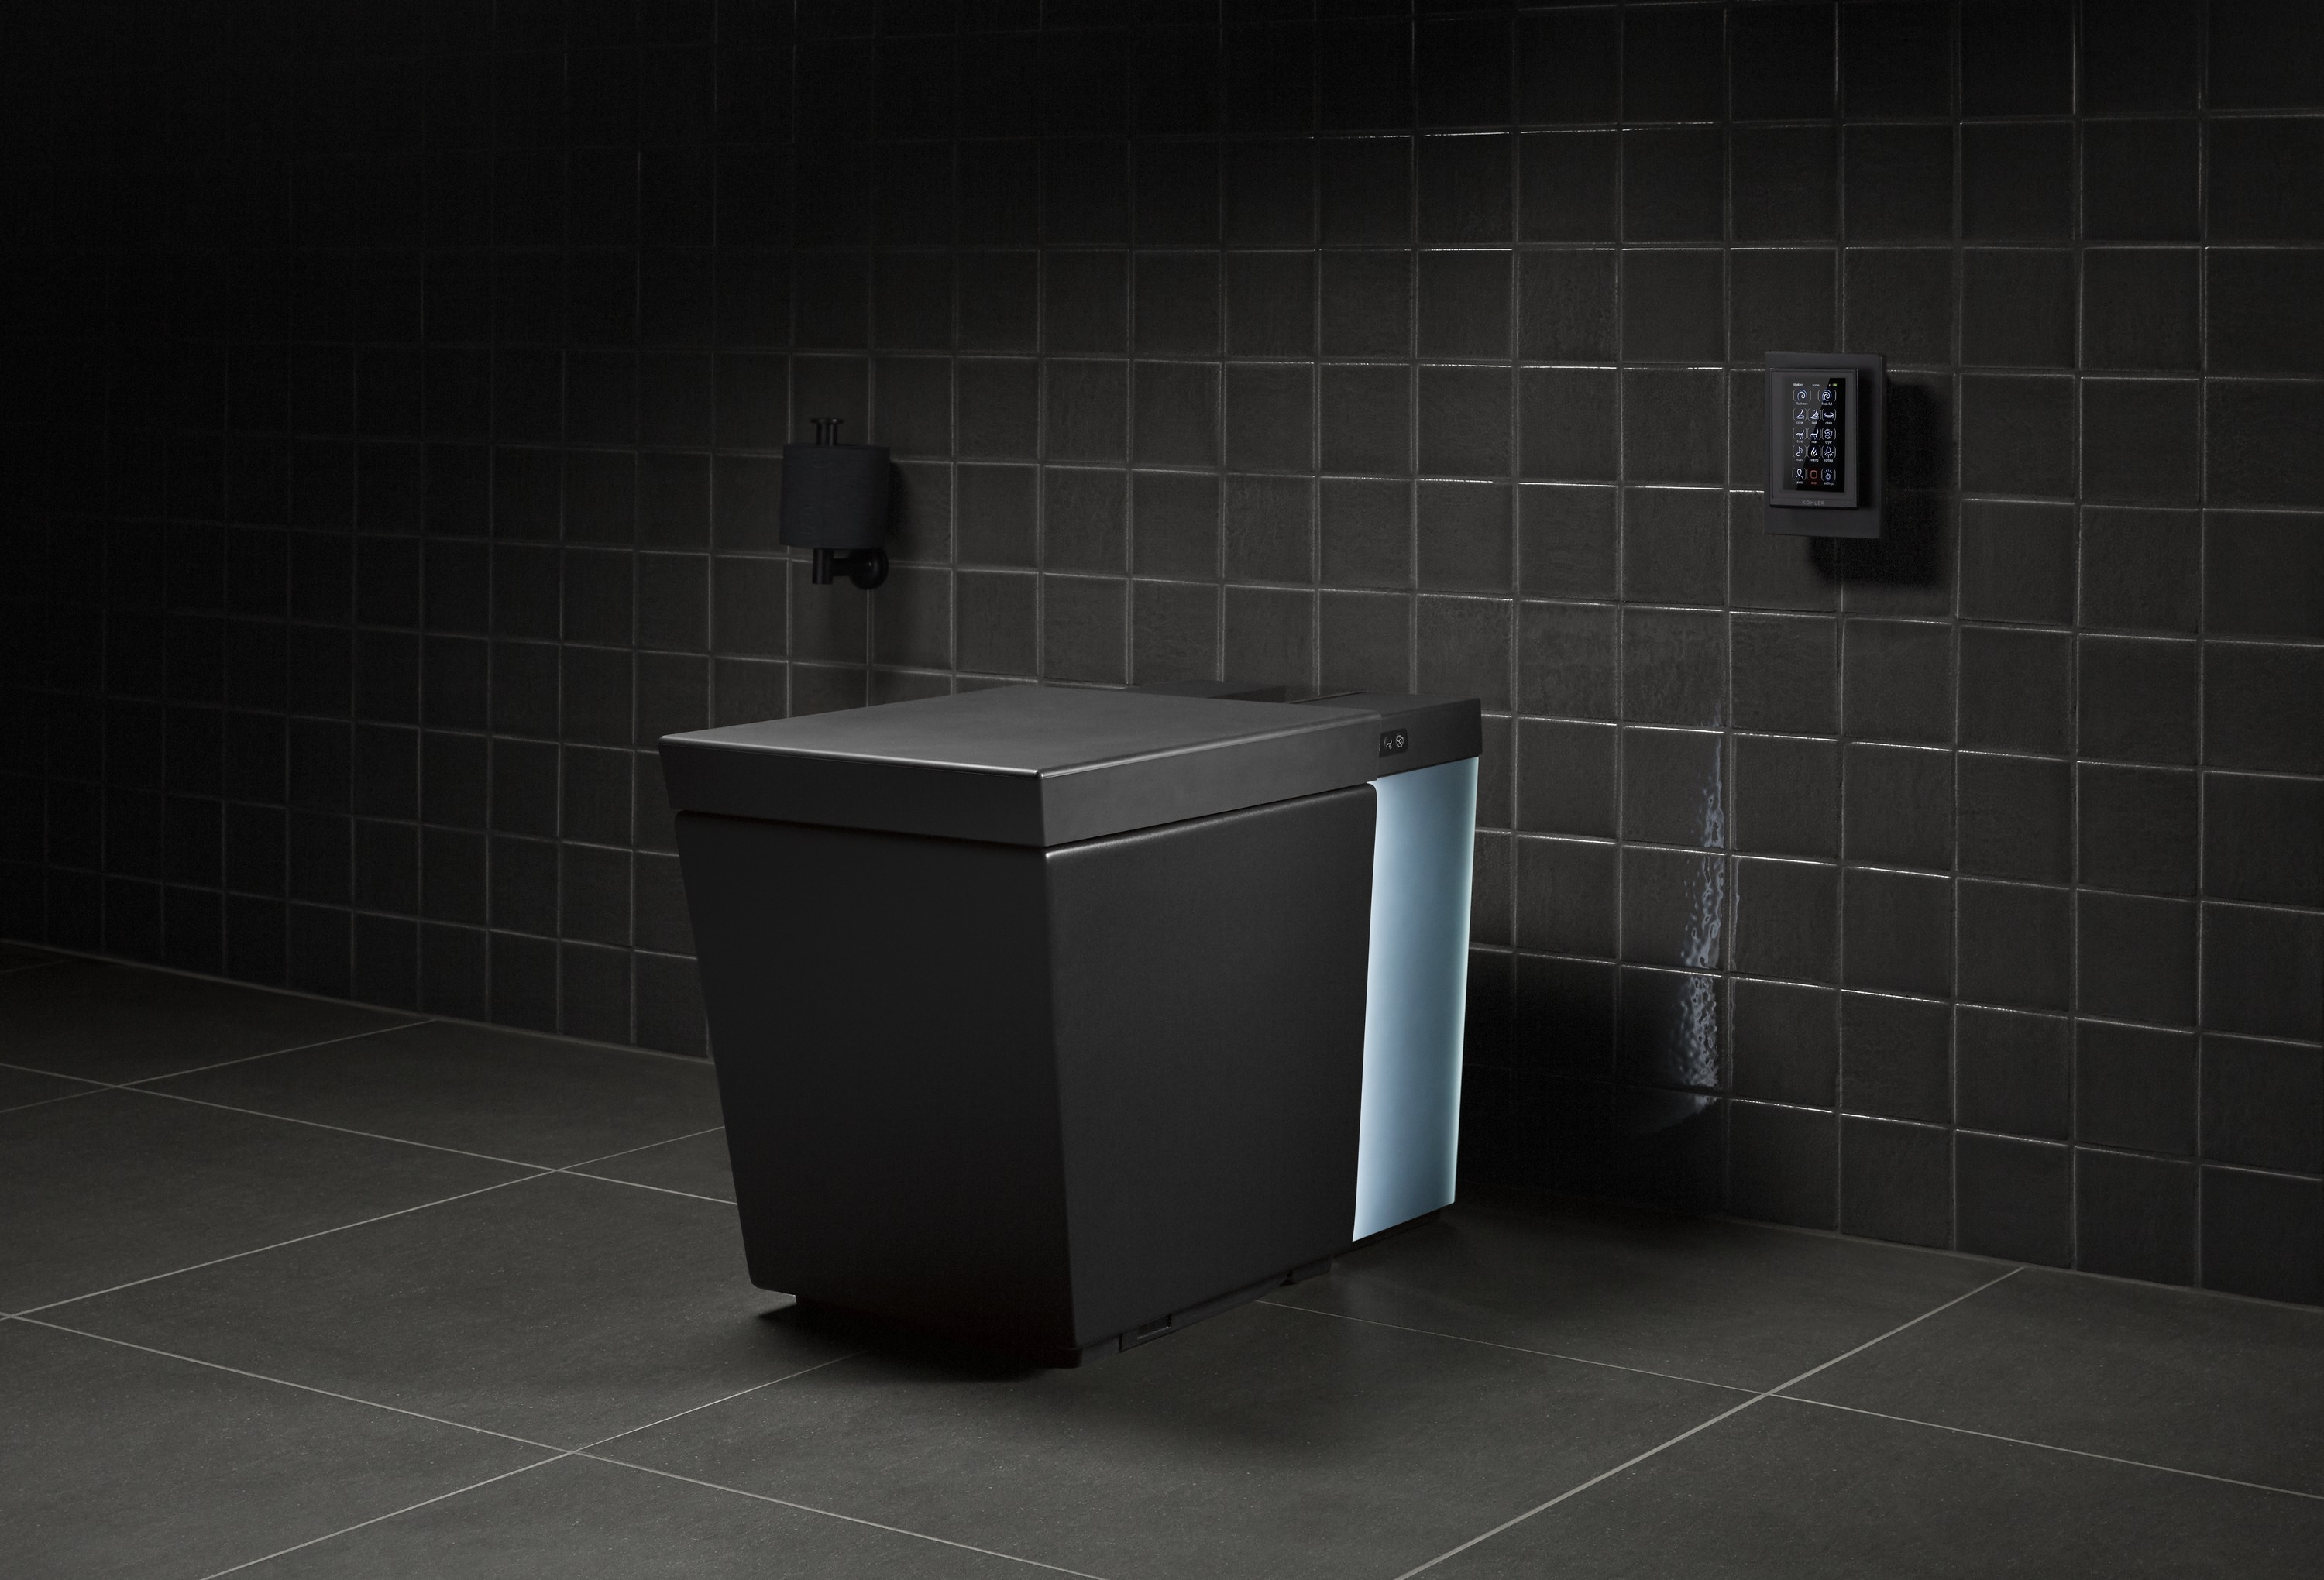 Sleek Euro Style Toilets Solve Many Issues Residential Products Online